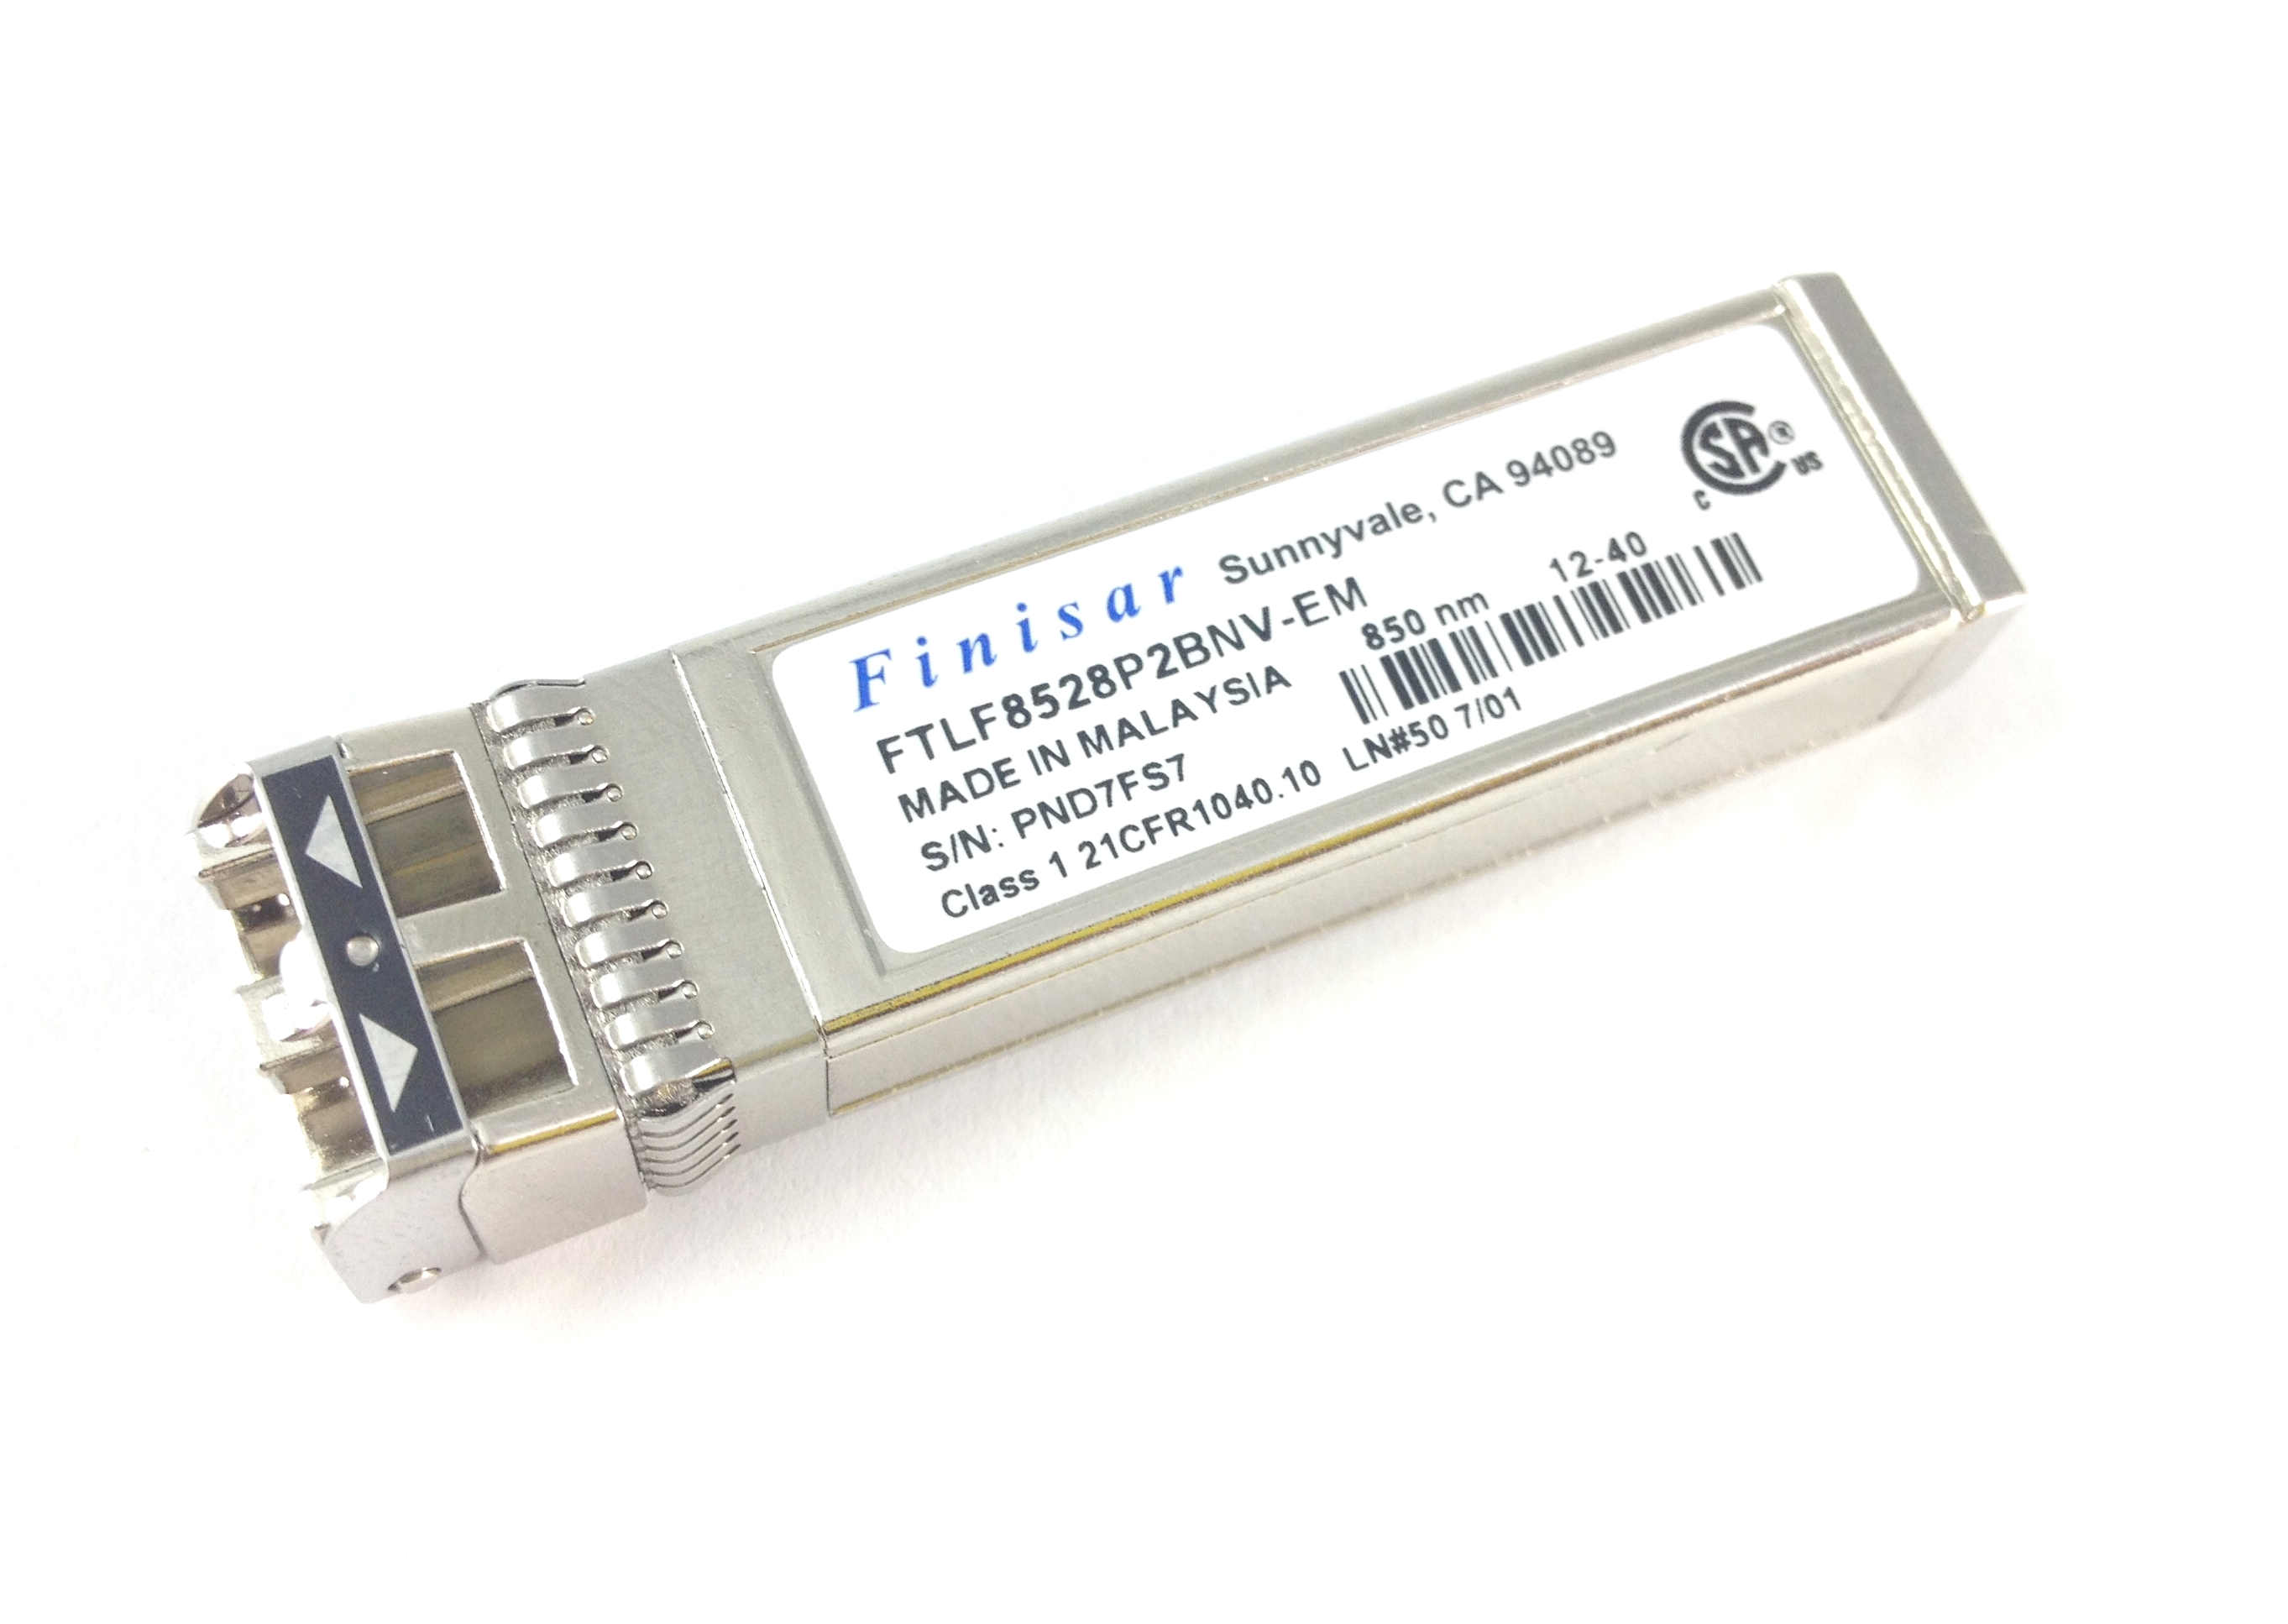 FINISAR 8GB 850NM FC SFG+ OPTICAL FIBER CHANNEL TRANSCEIVER (FTLF8528P2BNV-EM)